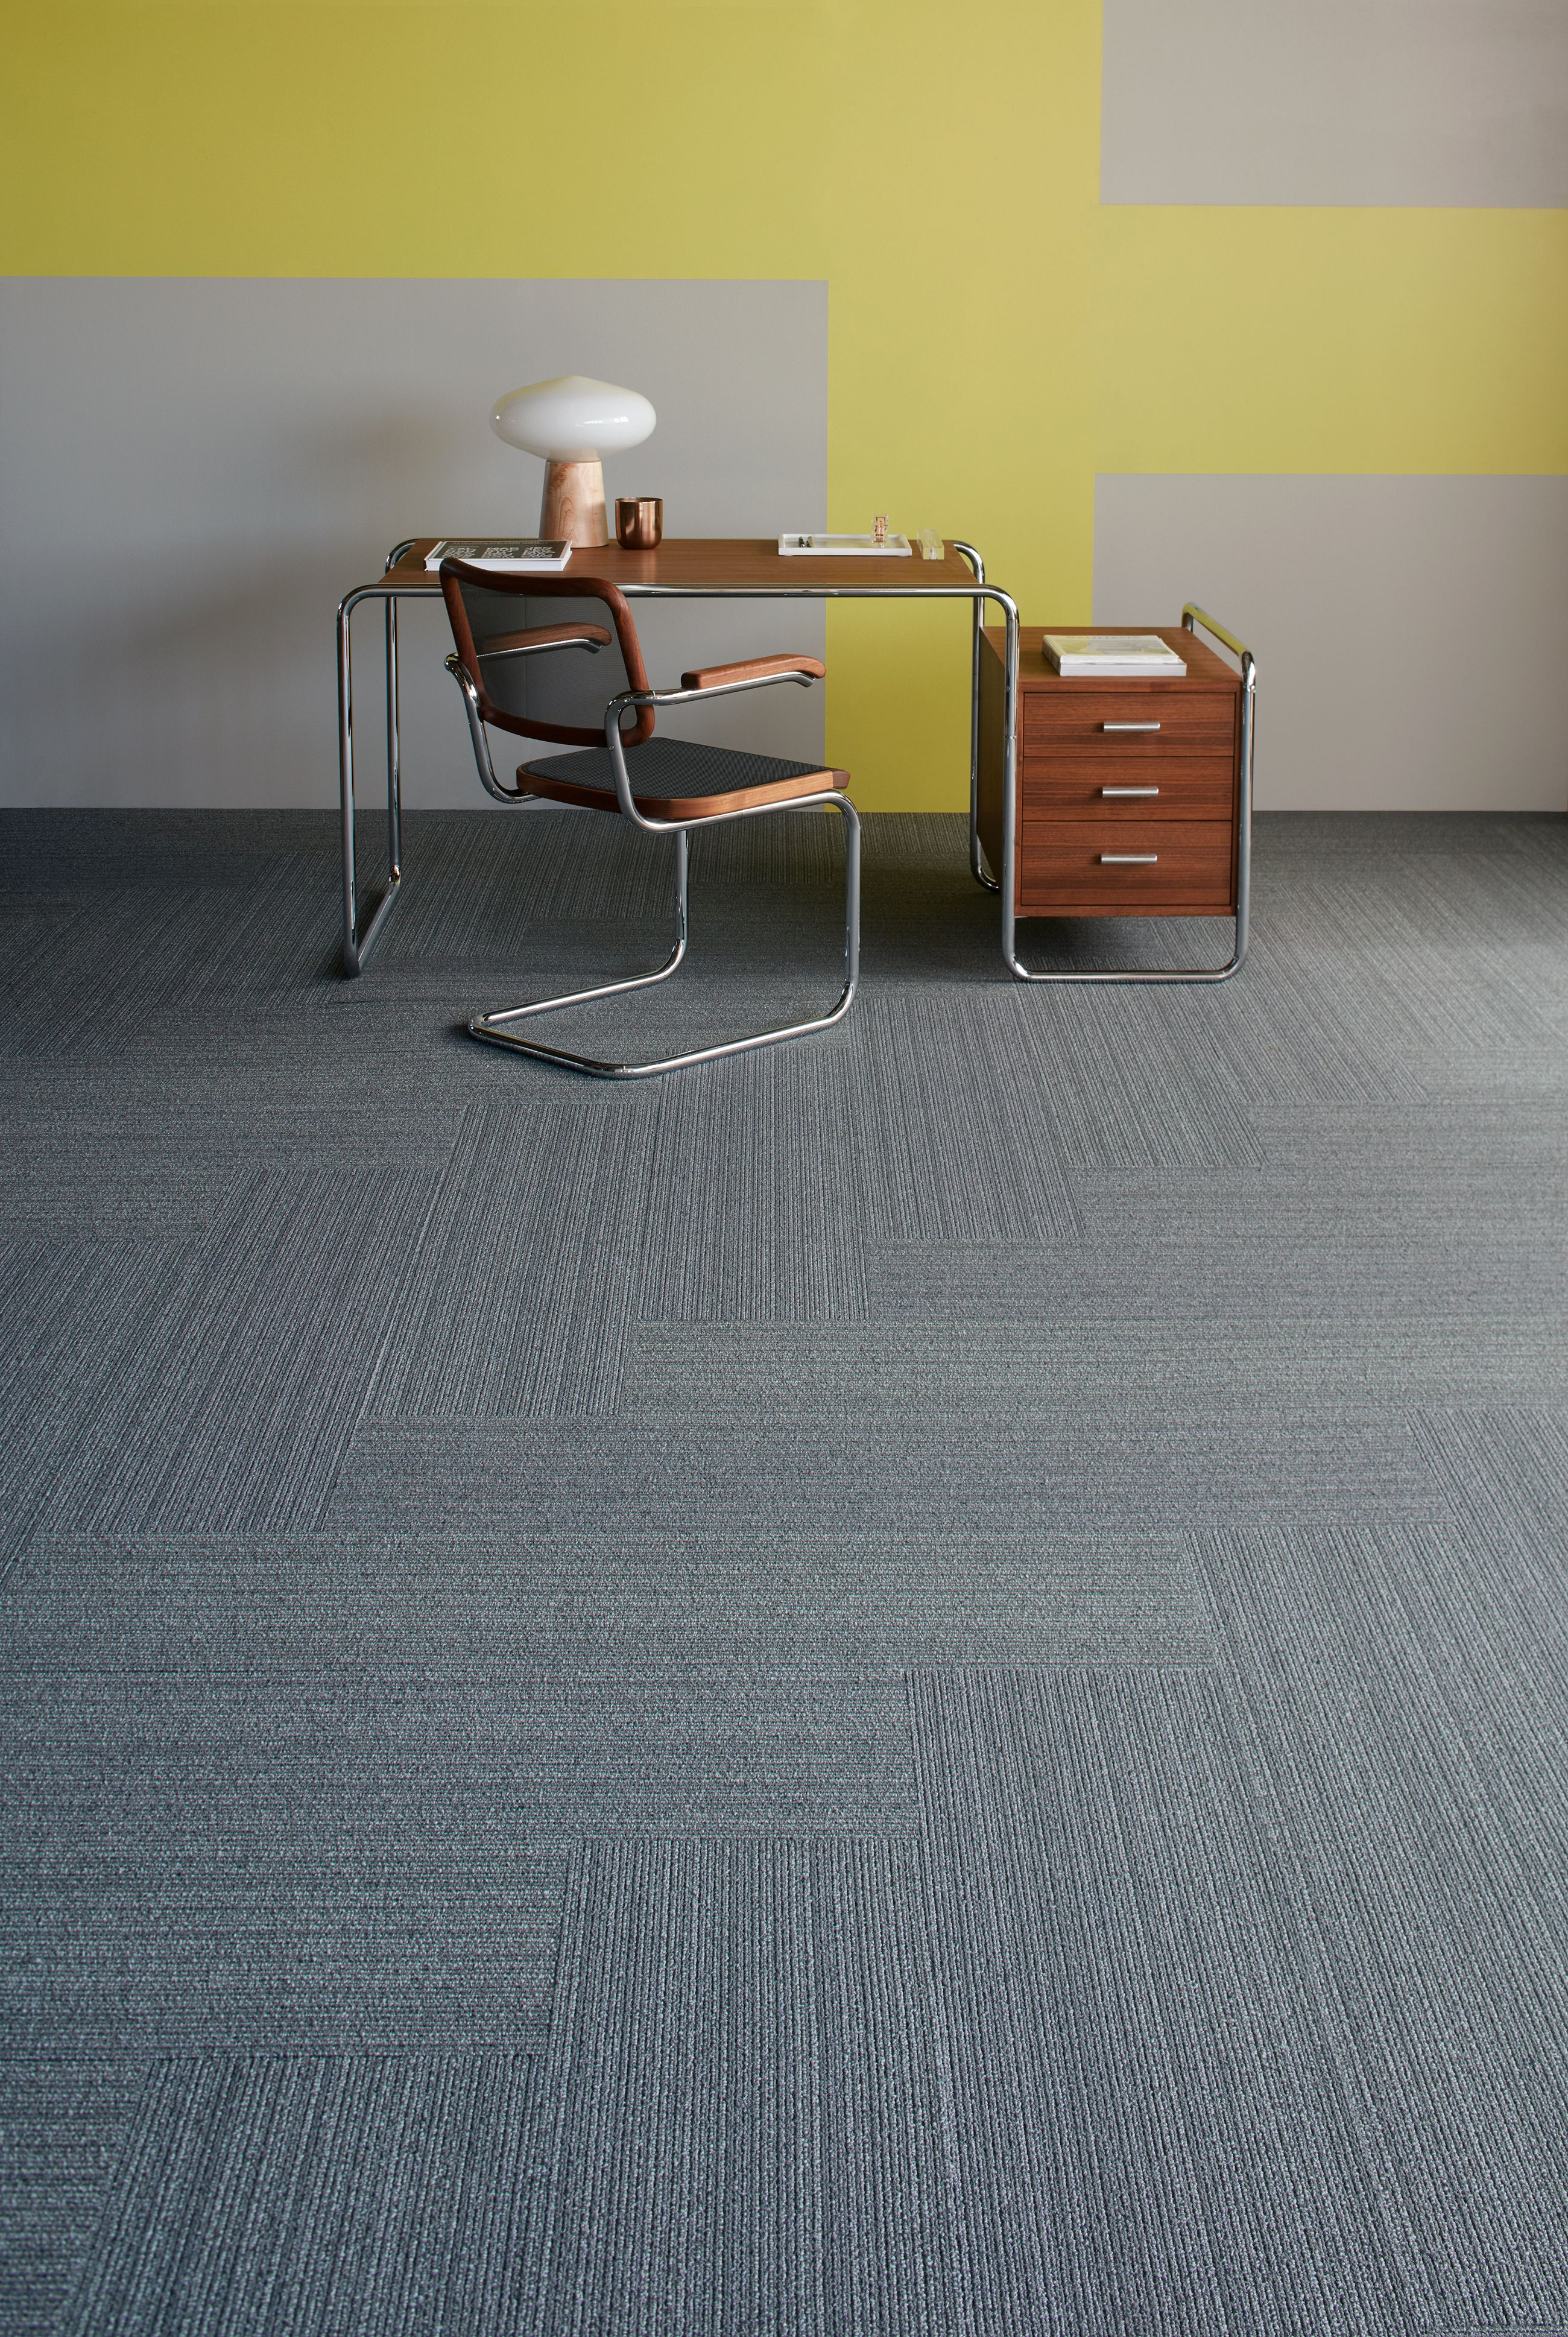 Pivot Point In 12 X 48 Plank Part Of Patcraft S Action Plank Collection Plank Carpet Tiles Commercial Carpet